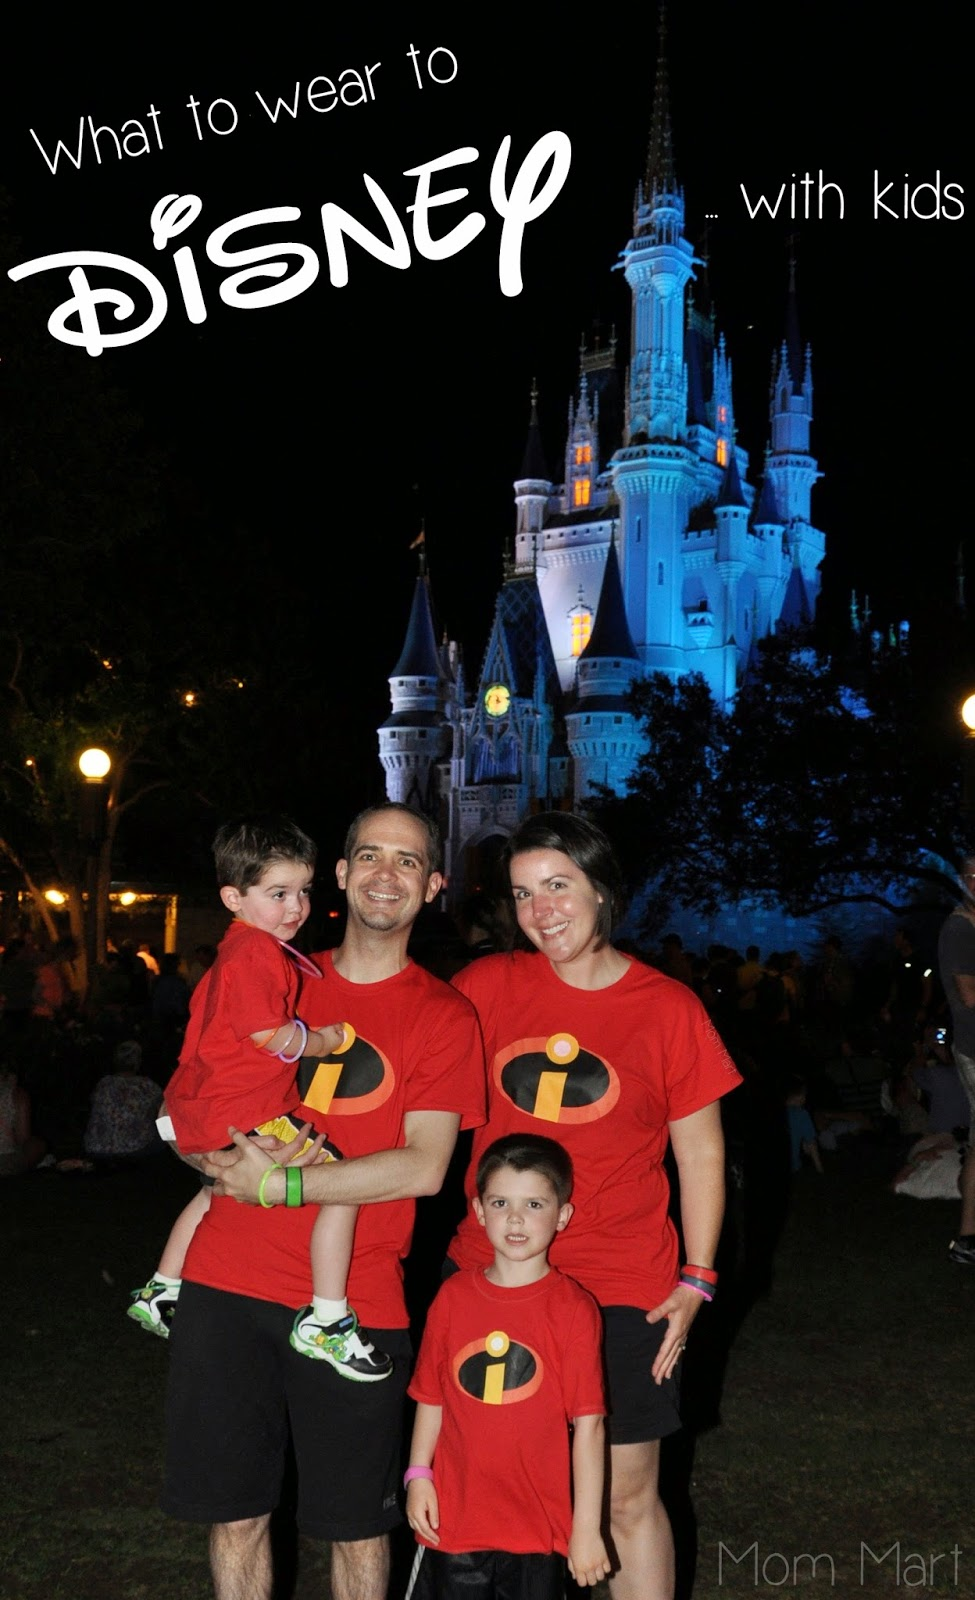 What to wear to Disney World with kids #Disney #DisneyVacation #MatchingShirts Mom Mart